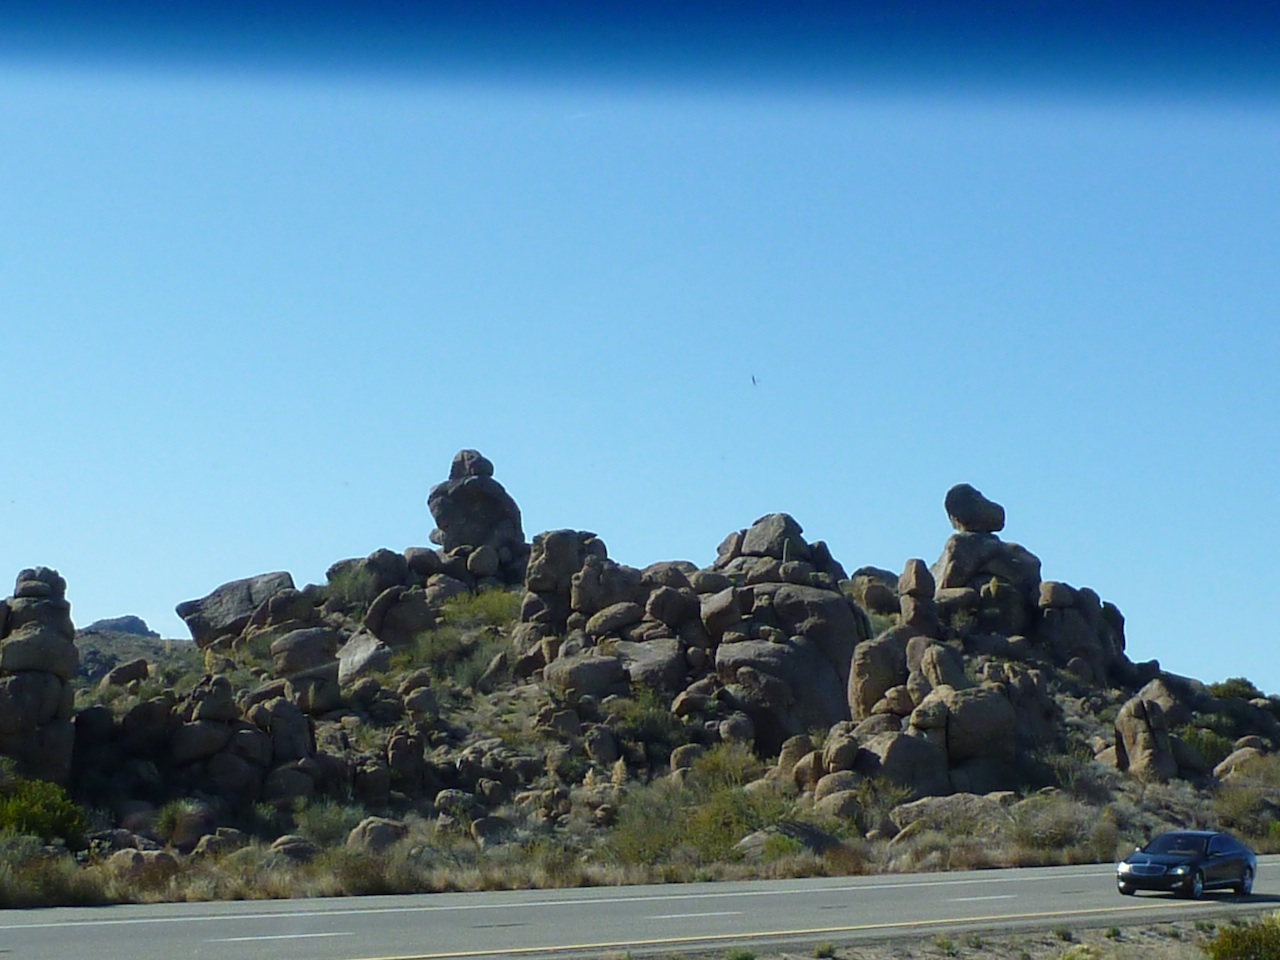 Amazing Boulders Just Seem To Appear Out Of No Where